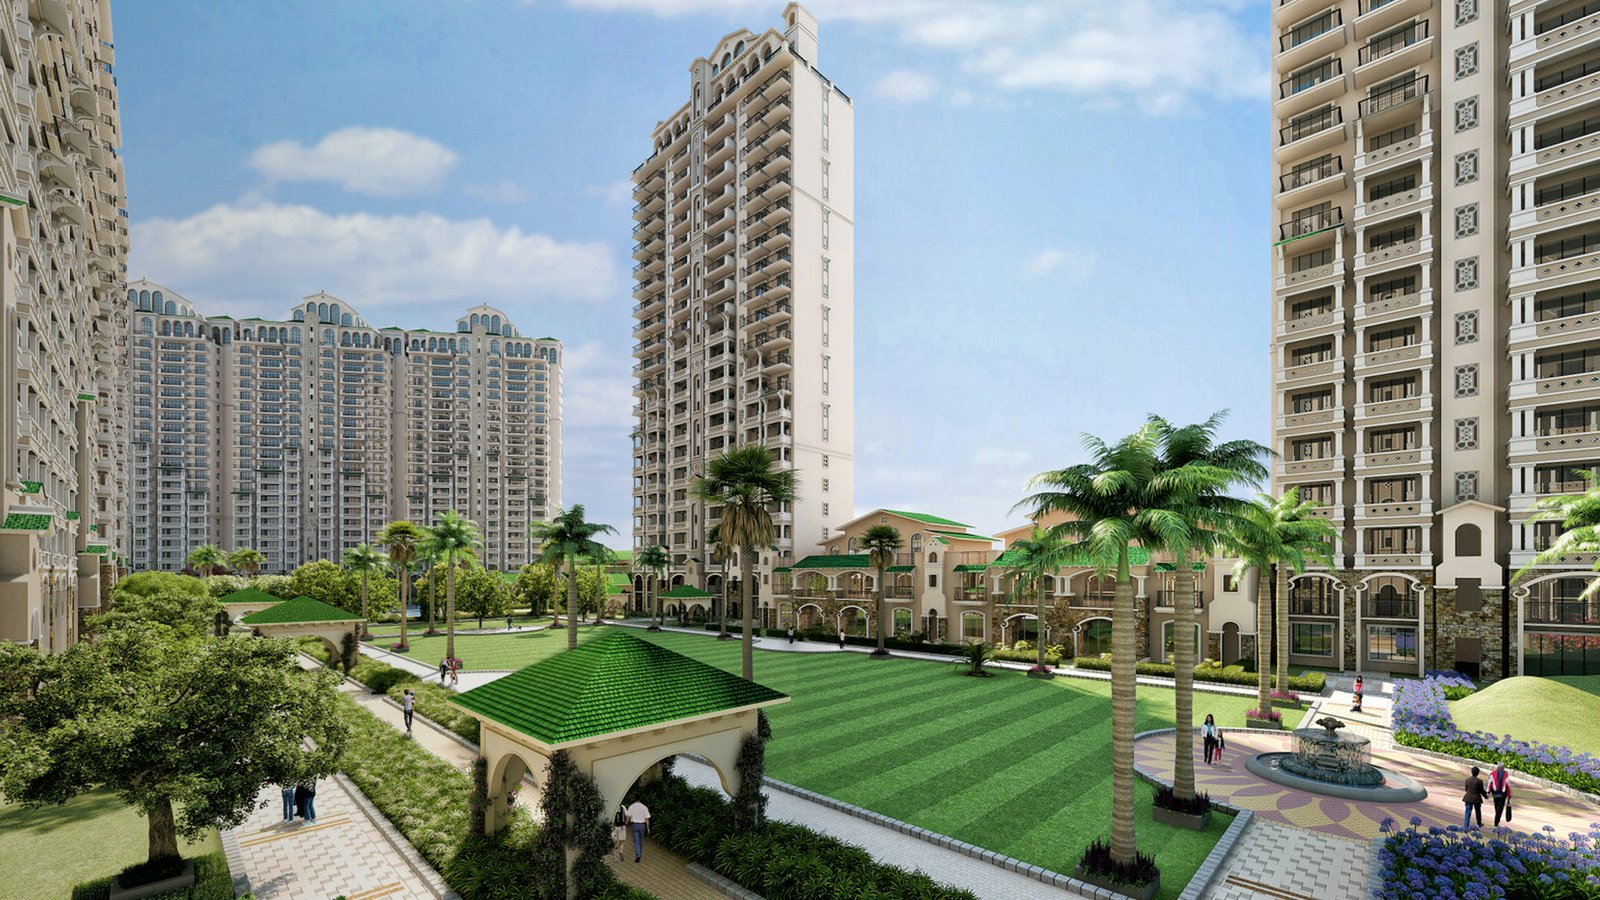 ats casa espana sector 121 mohali chandigarh super luxurious flats